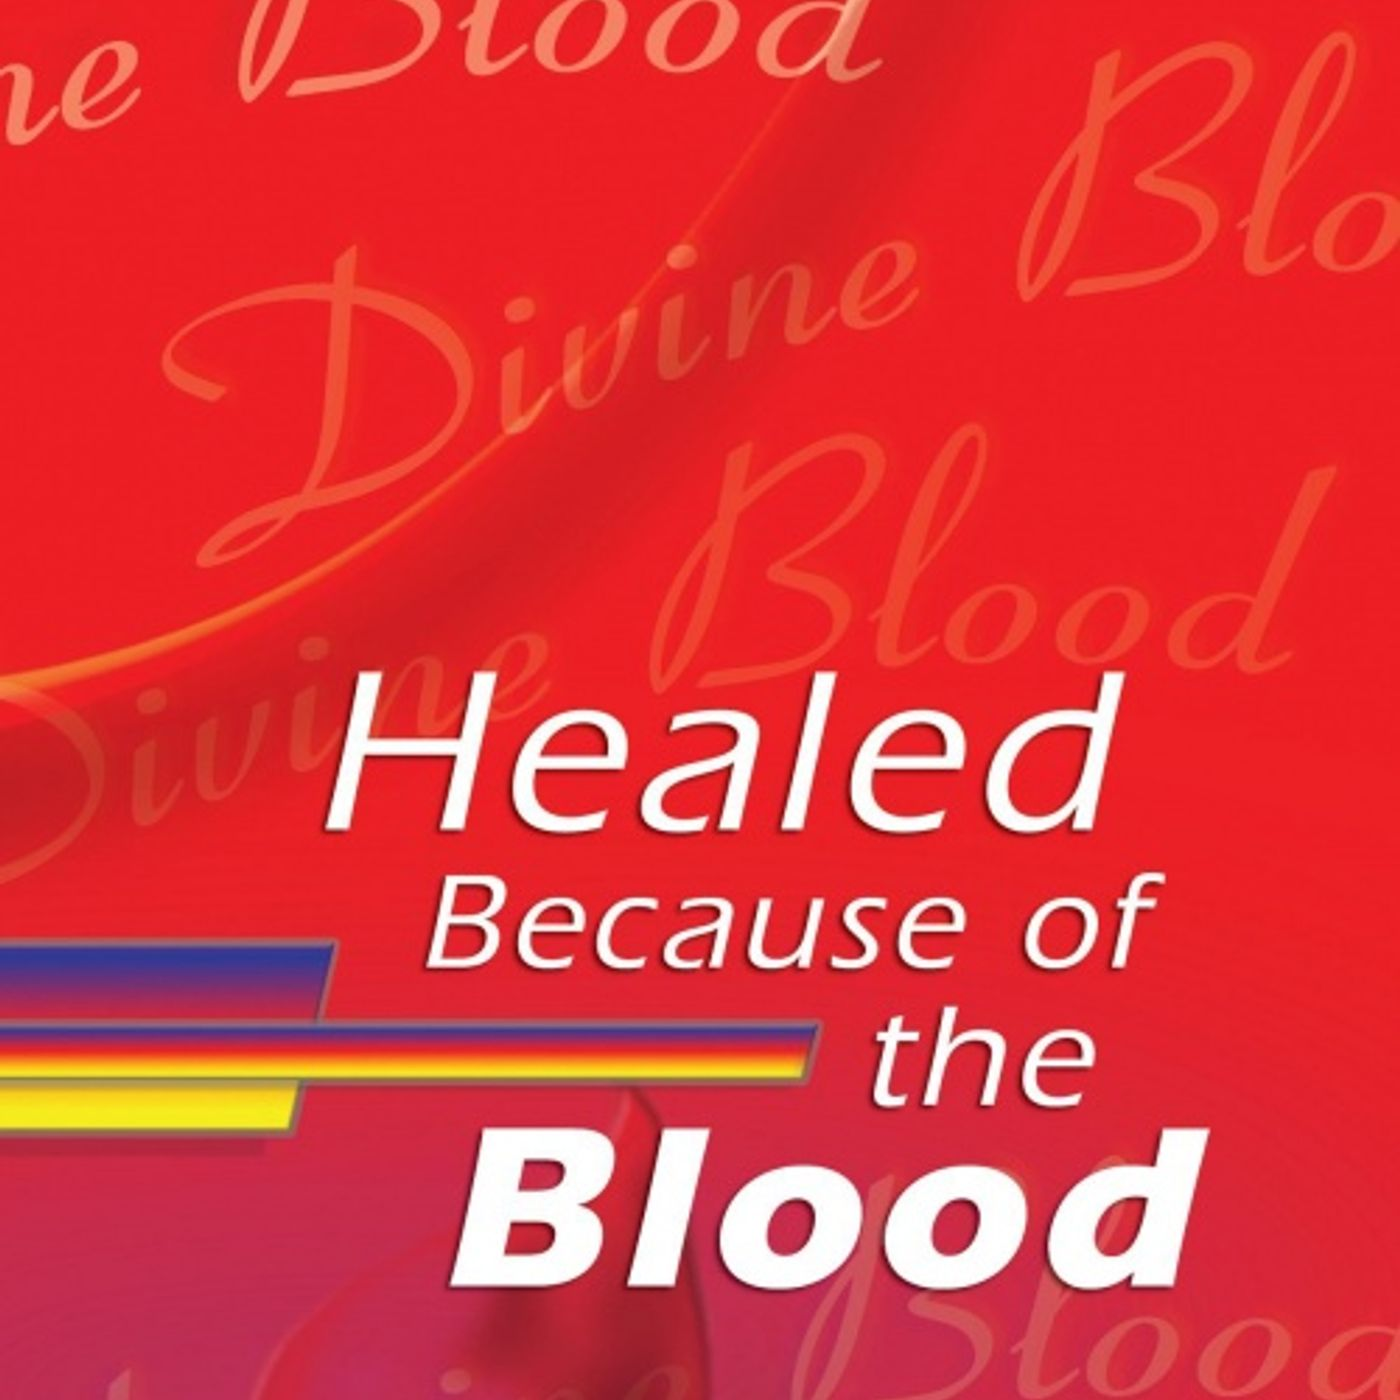 Jesus Brought Salvation and Healing Today